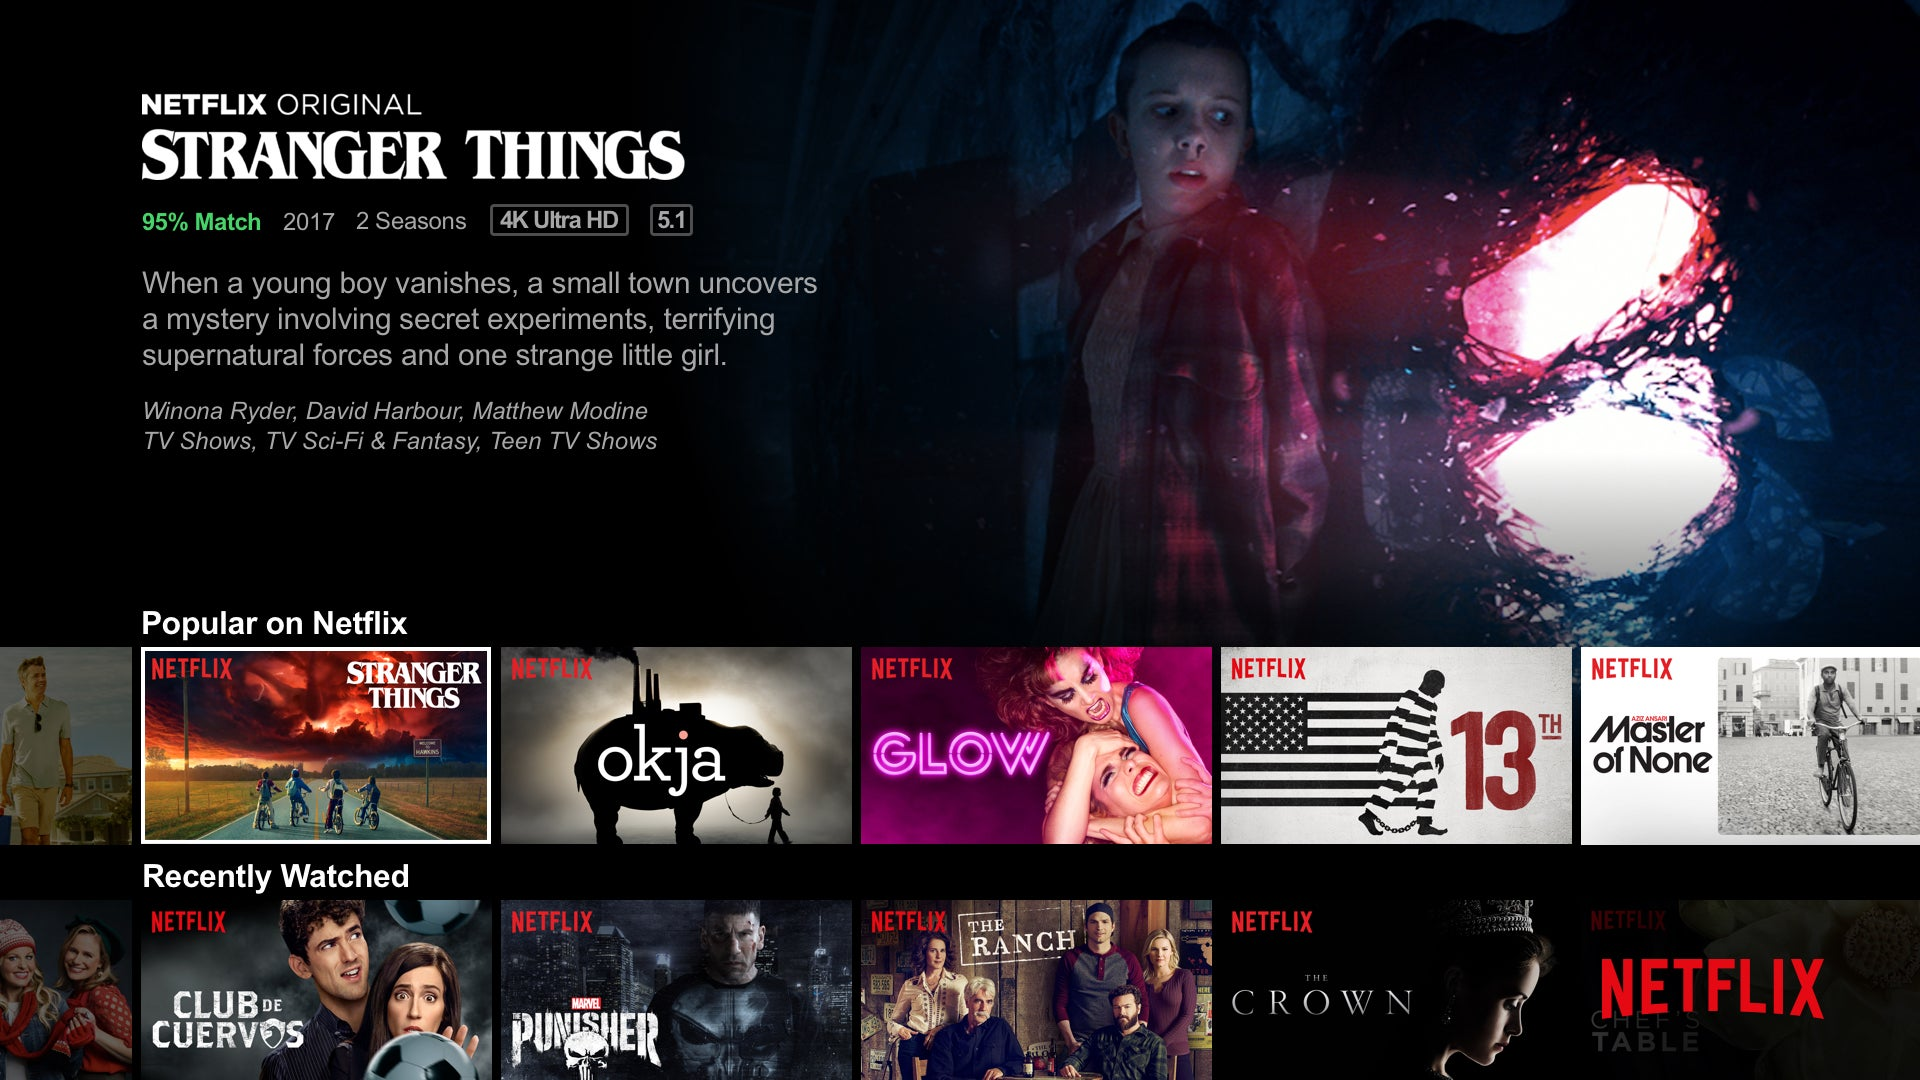 Netflixs 8 Billion Content Budget To Fund 700 Tv Shows And Movies  The Motley Fool-2399